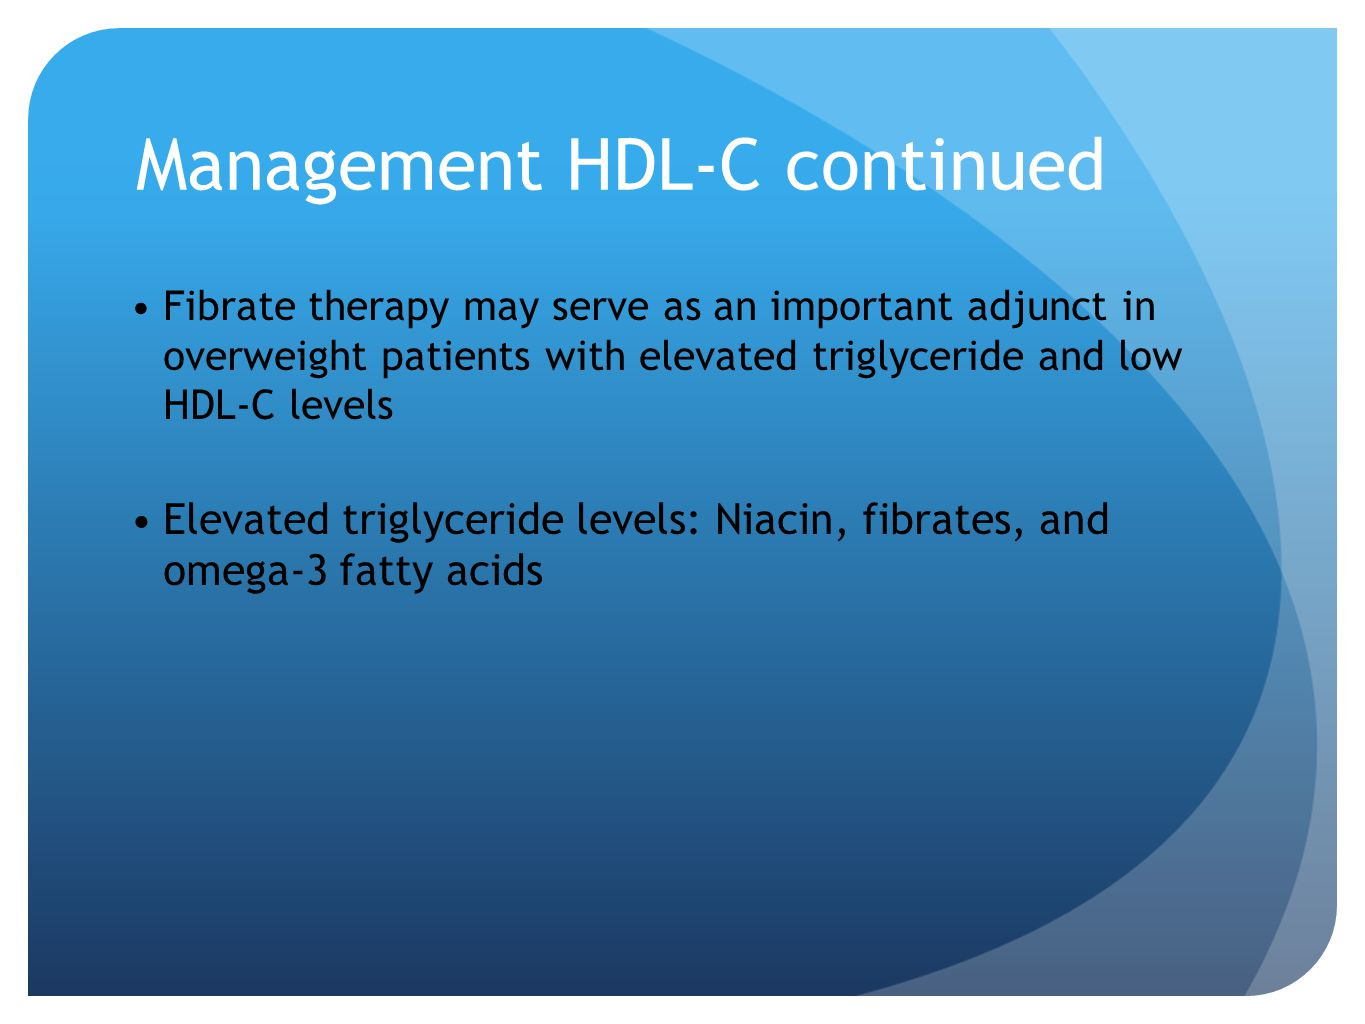 Management HDL-C continued